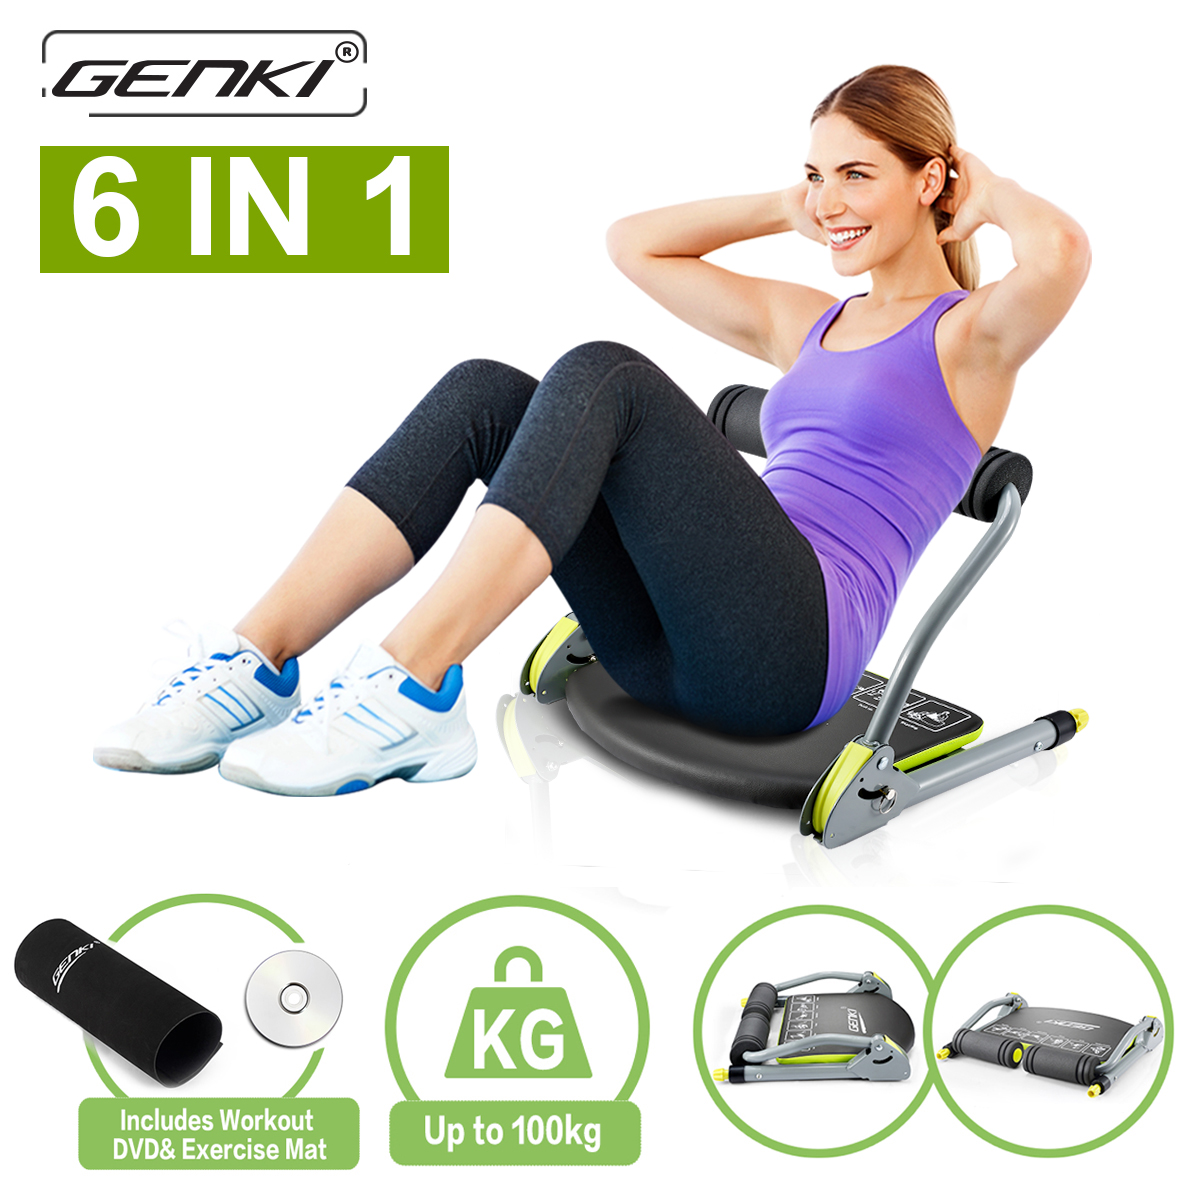 Genki Abs Machine Total Core Exercise Abdominal Trainer Ab Workout Fitness Equipment Sit Ups Crunches 6 In 1 (Exercise DVD Guide and Anti-Skid Pads) For Home Gym